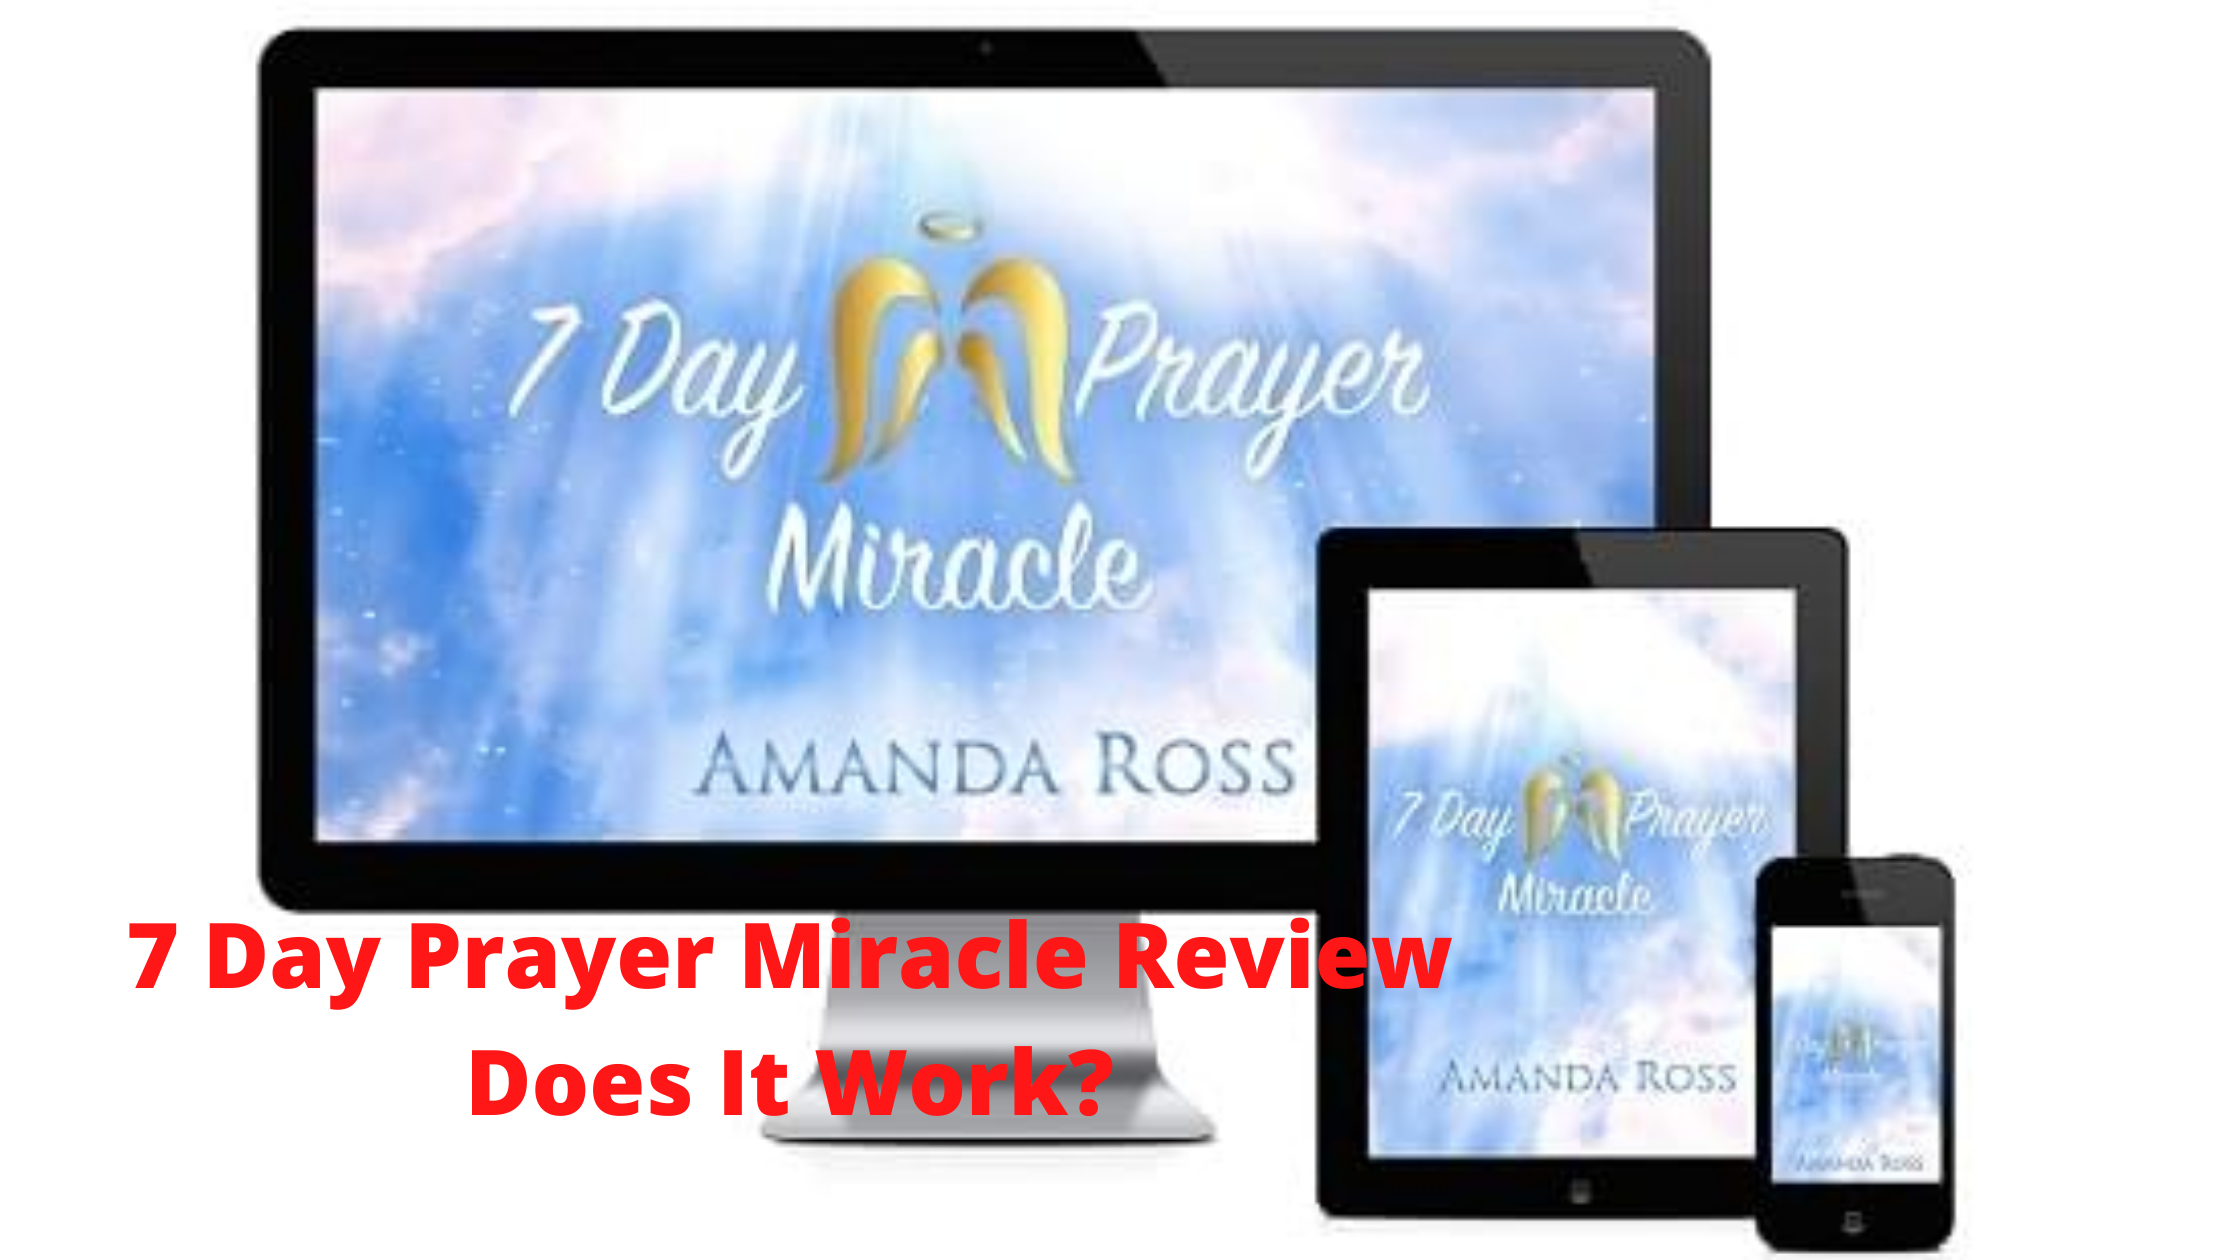 7 Day Prayer Miracle Review Does It Work